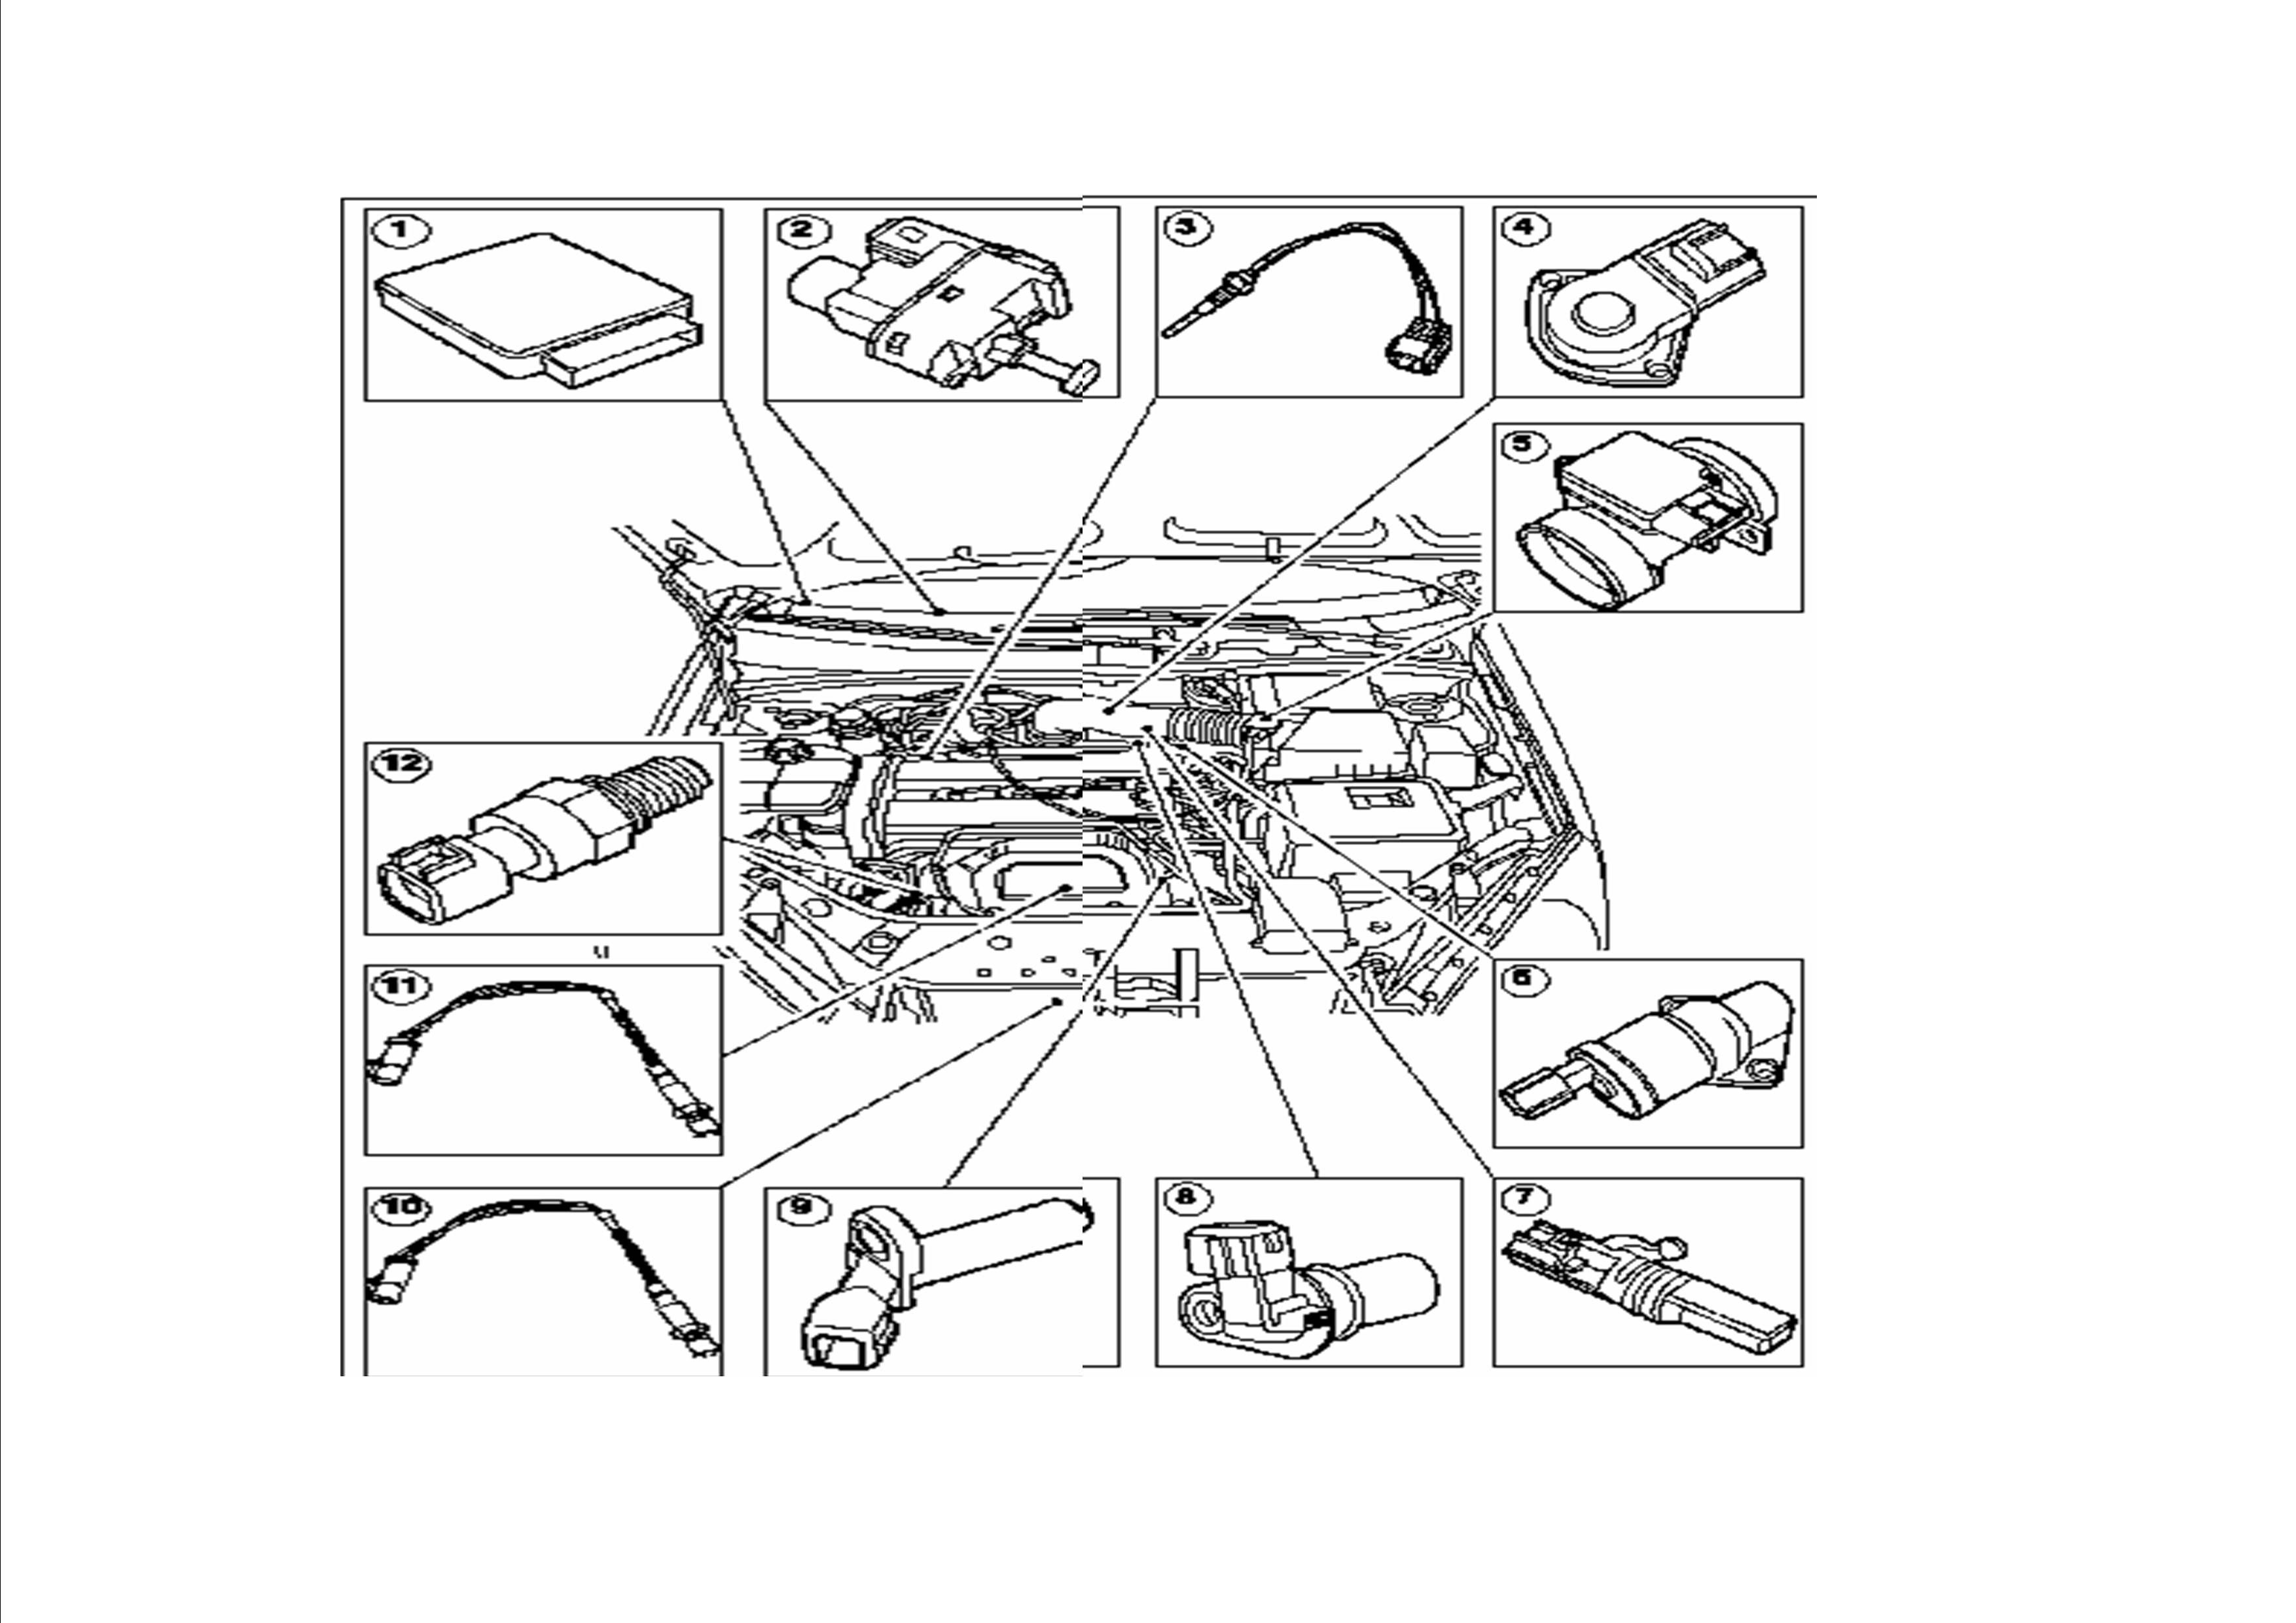 2000 Ford Focus Zts Wiring Diagram Data Radio Dohc Manual Yahoo Image Search